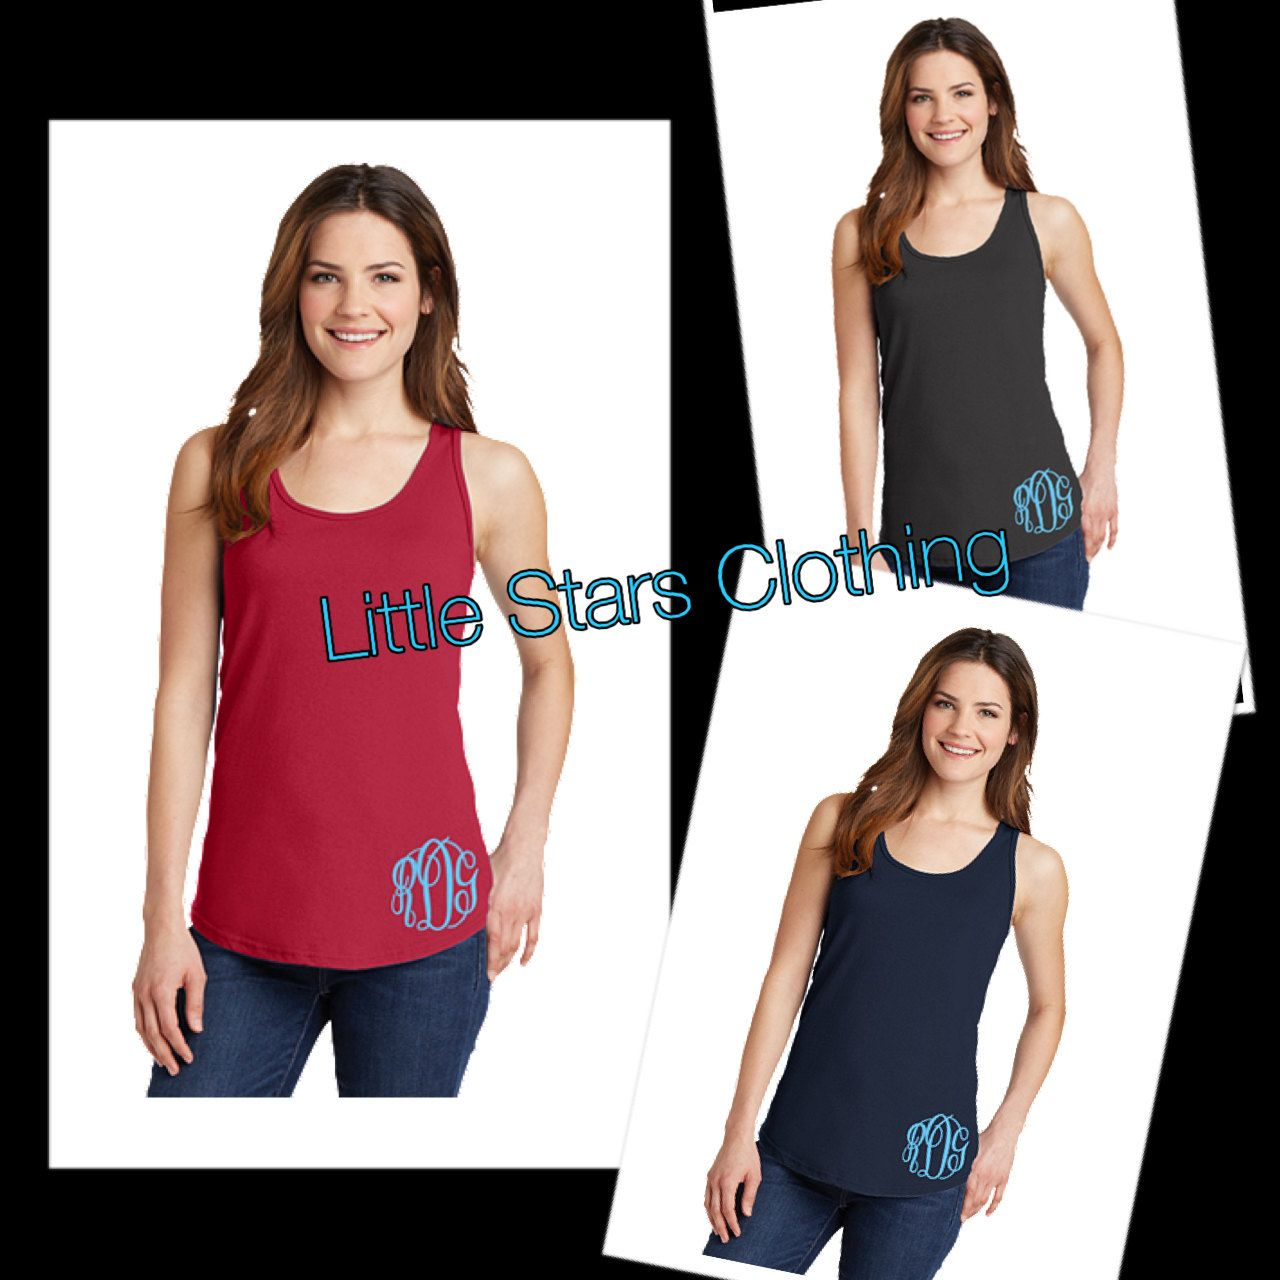 Monogrammed Tank-Available in sizes XSmall-XXLarge by littlestarsclothing on Etsy